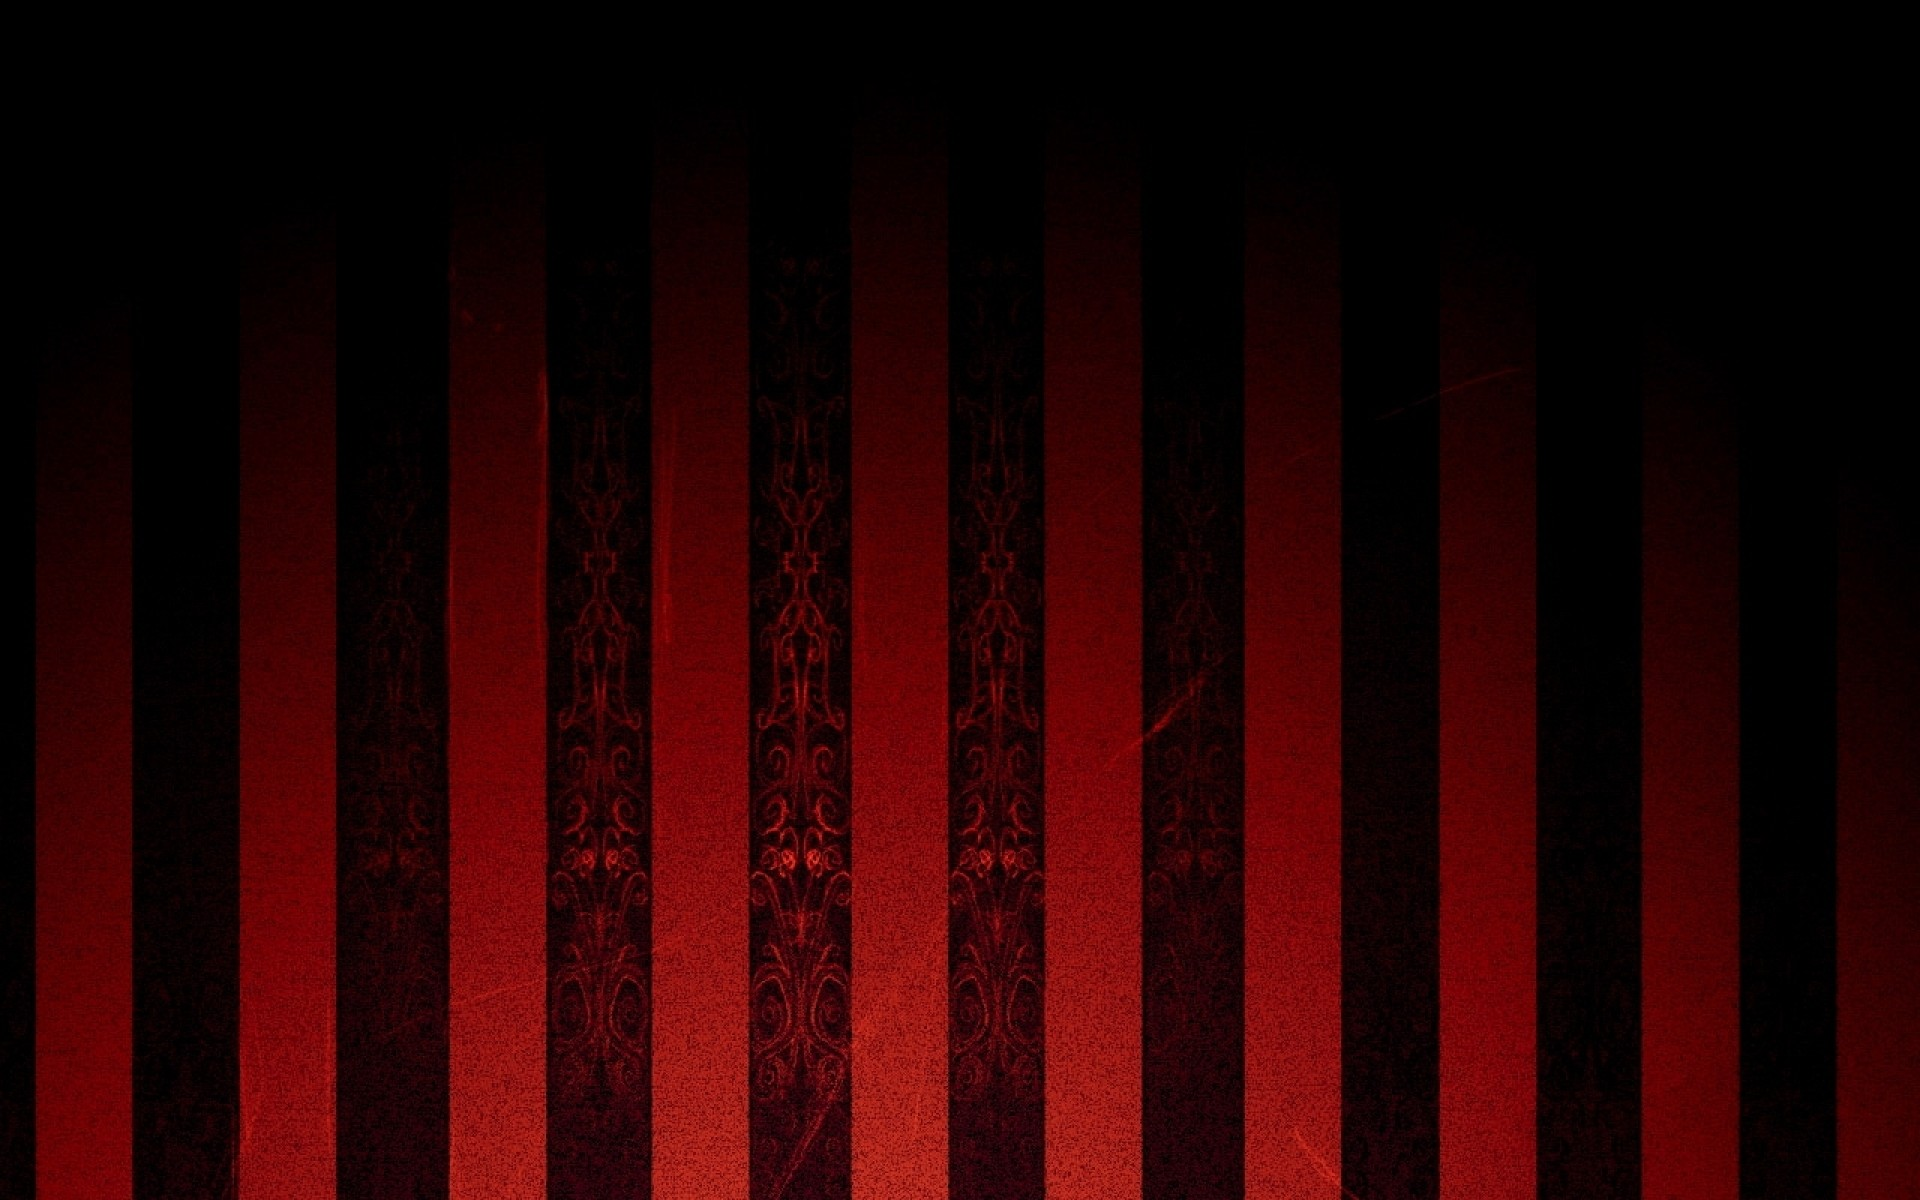 … Black and Red Abstract Full HD Wallpaper 479 | Amazing Wallpaperz